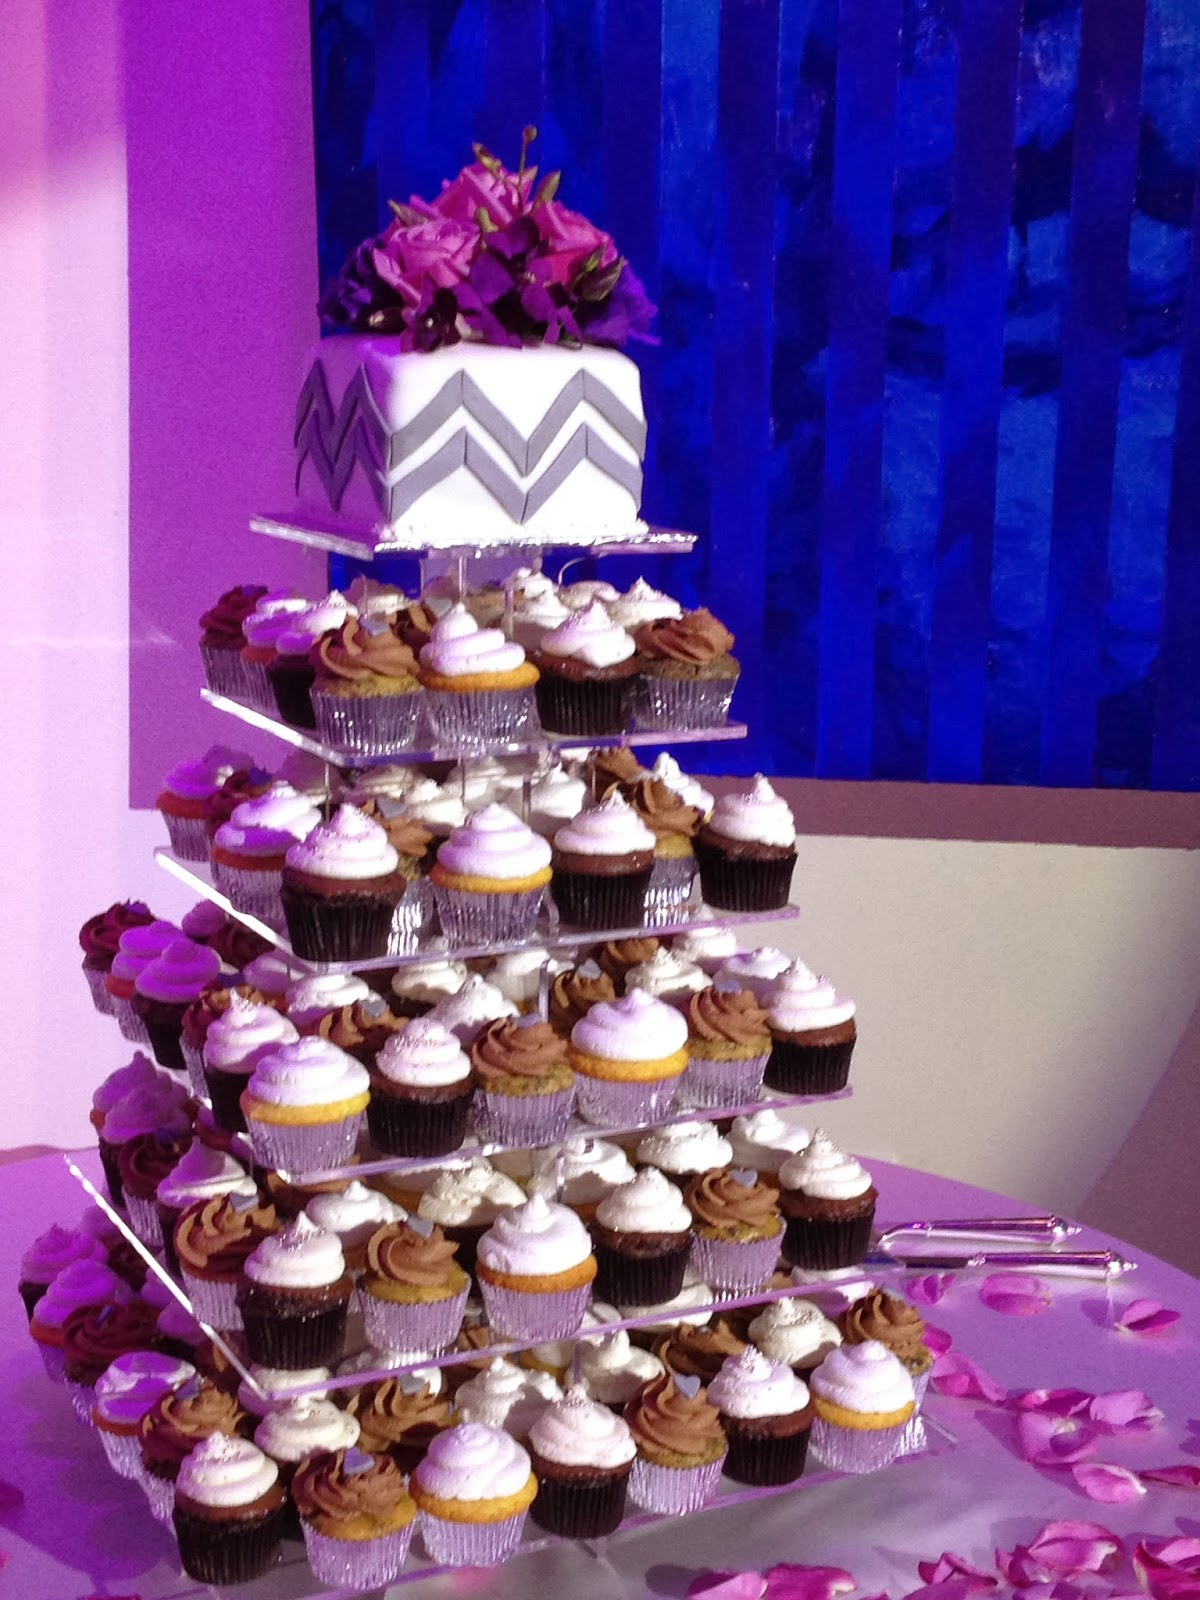 Square Cupcake Tower Yestbuy 5 Tier Square Wedding Party